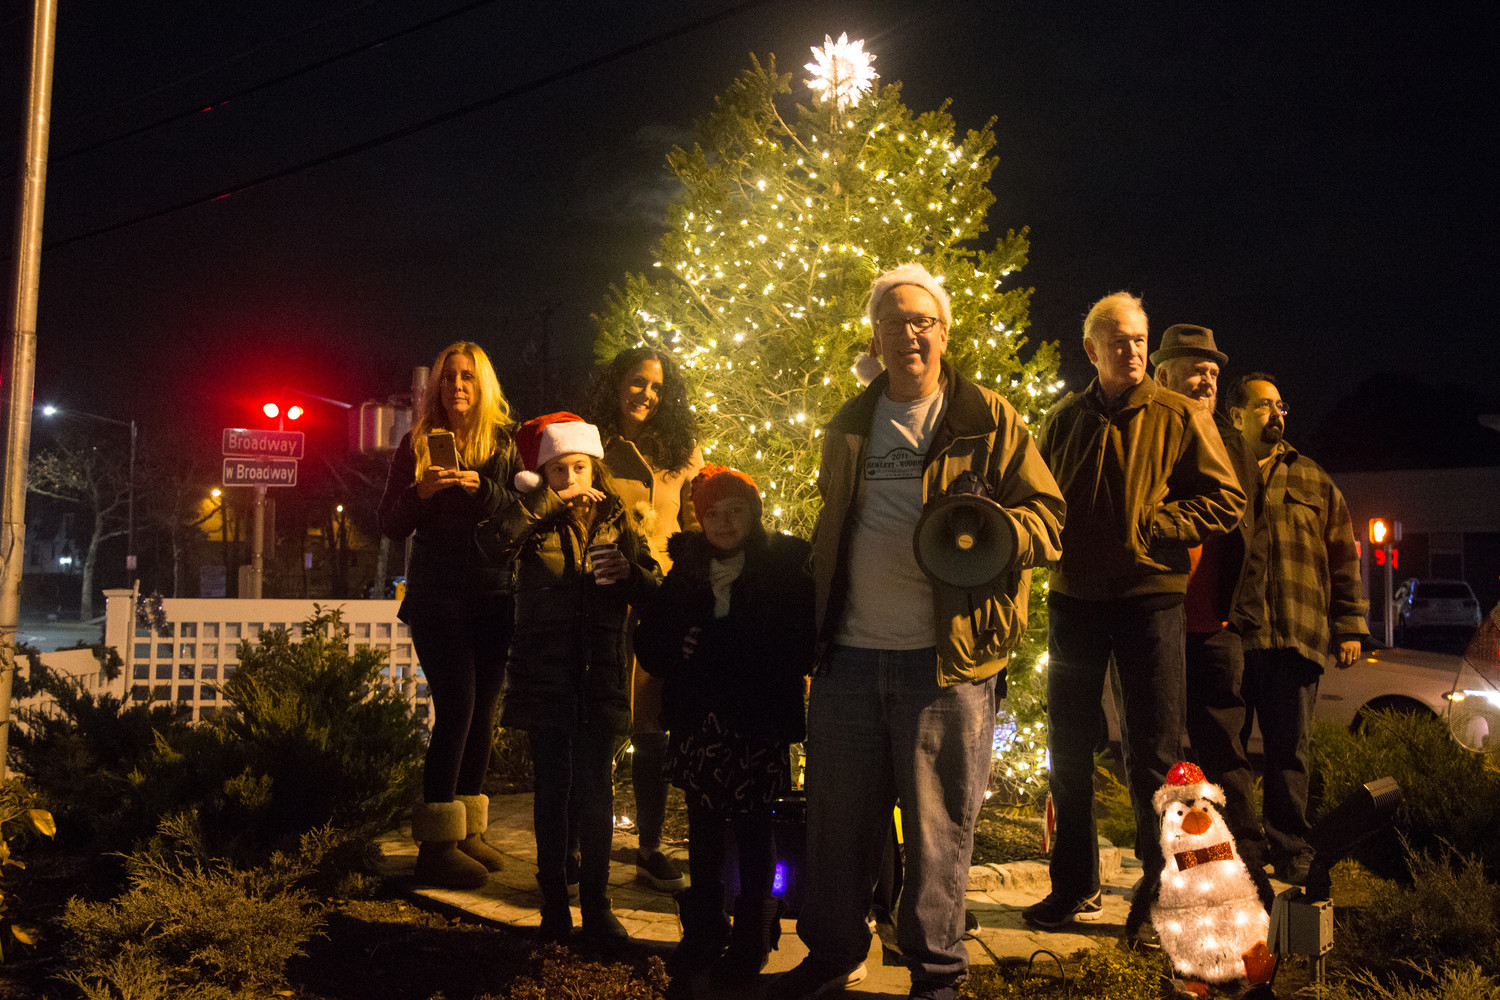 Hewlett-Woodmere Business Association President David Friedman, center, with friends at the tree lighting, including County Legislator Howard Kopel (R-Lawrence) to his right and HWBA 1st Vice President John Roblin.